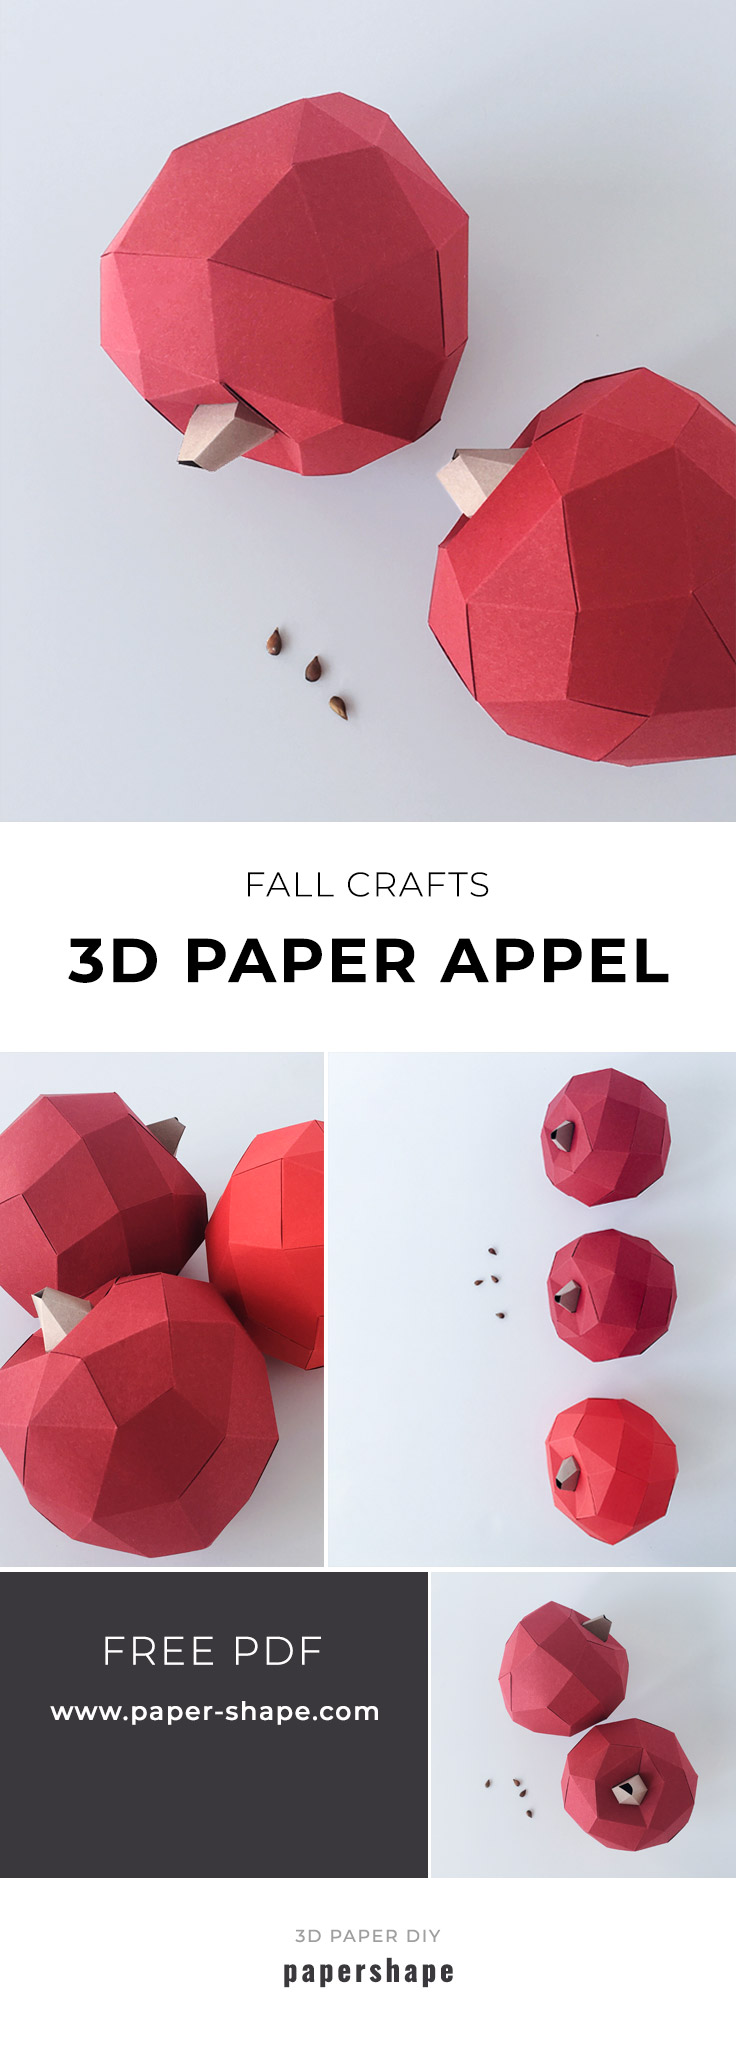 Apple paper craft for your fall decor (with free template from PaperShape) #papershape #falldecorideas